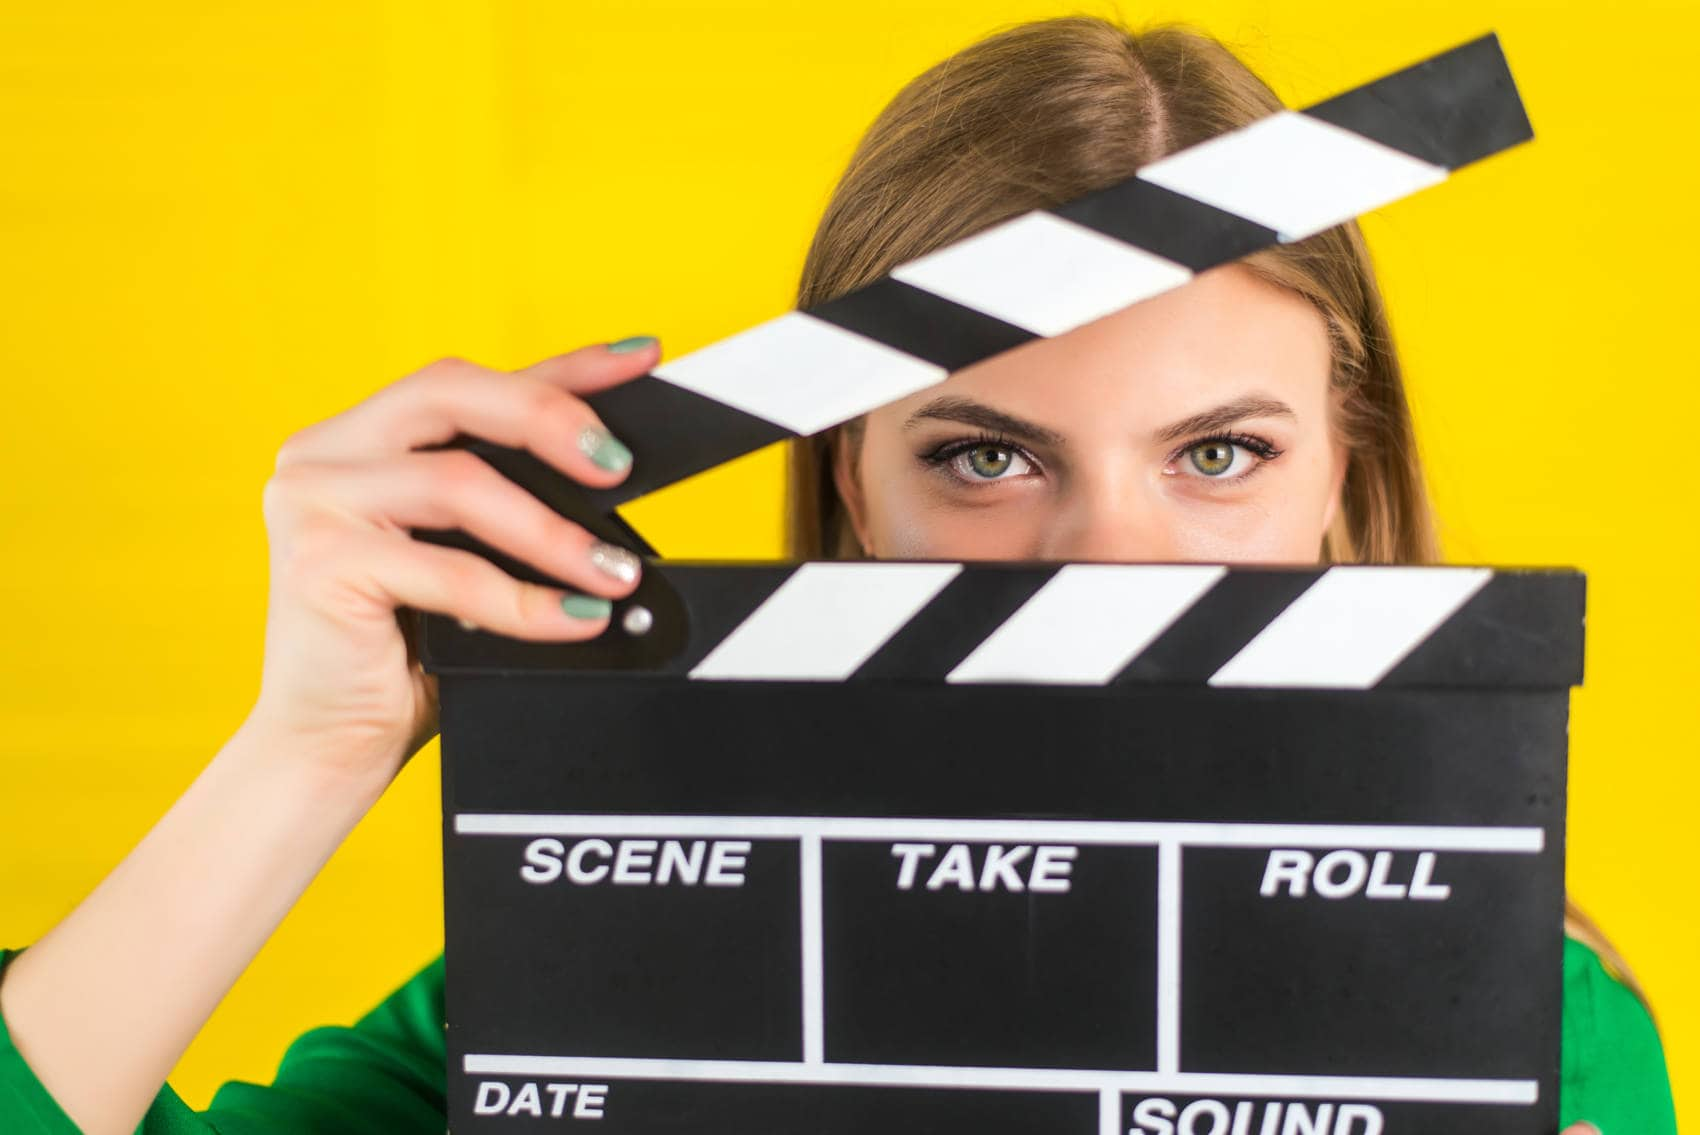 Student Casting Call: Public Relations Seeks Students for Future Projects